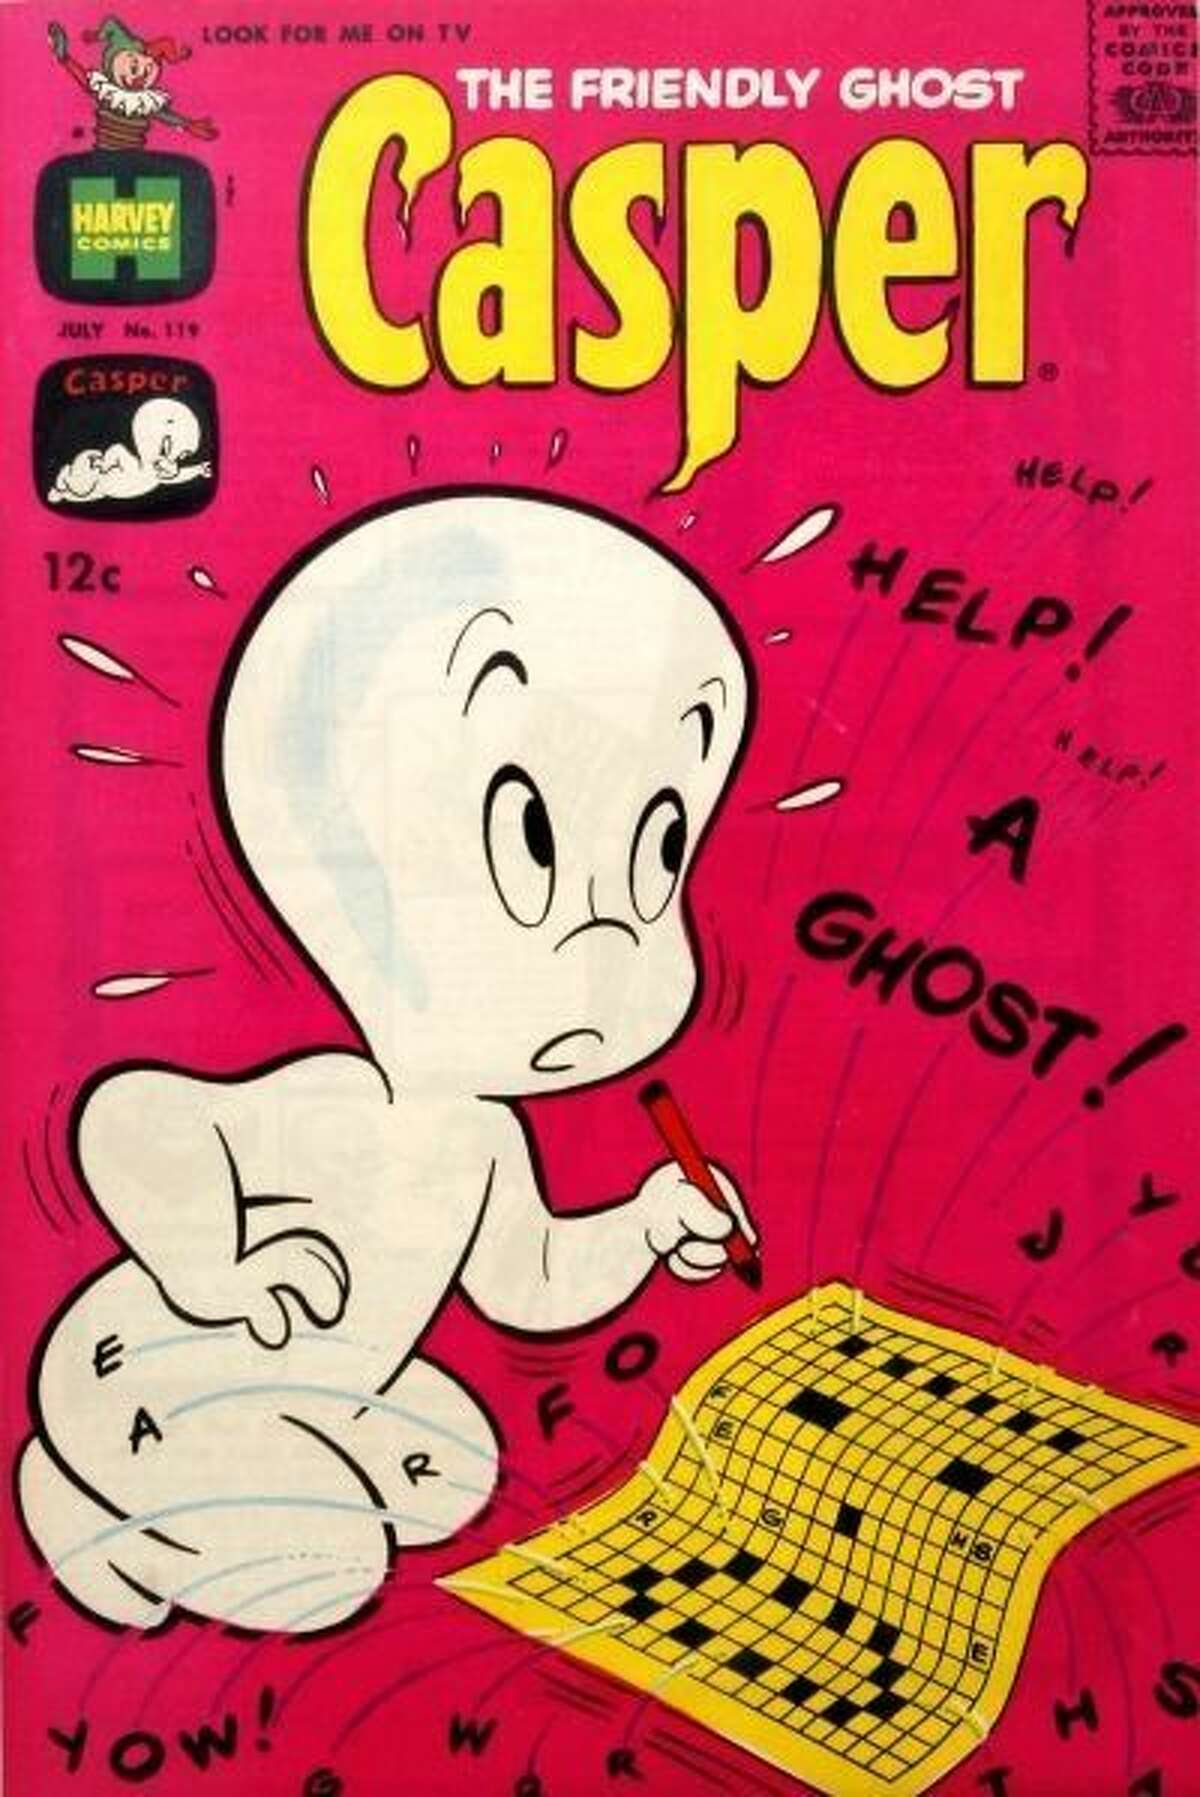 1968: Casper Boo! Thanks to successful books and a cartoon, Casper the Friendly Ghost made many trick-or-treat appearances in 1968.